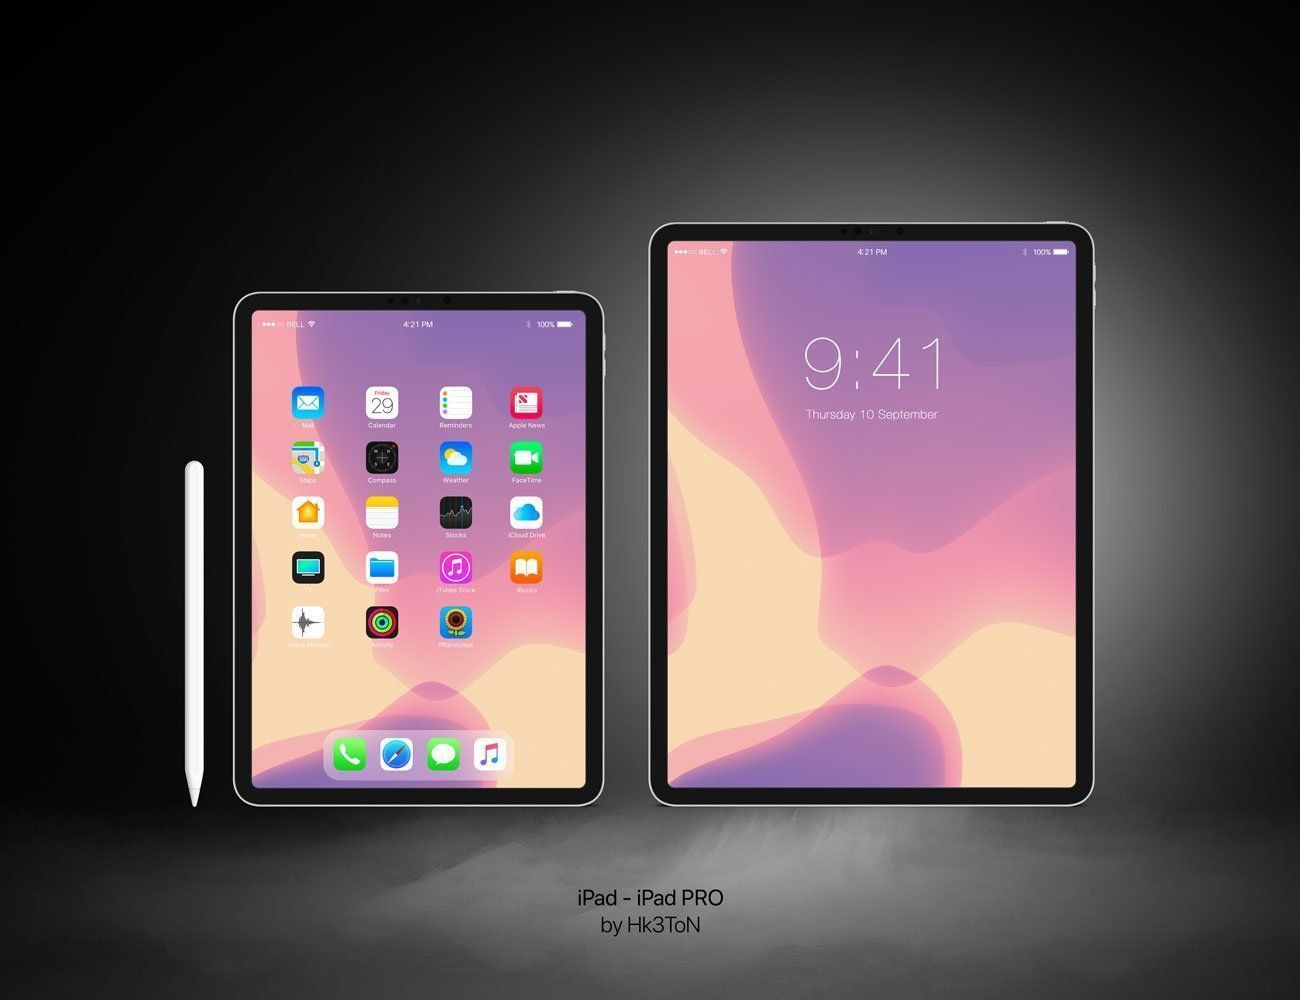 Ios 13 Wallpaper In Various Colors For Iphone And Ipad Ios13wallpaper Ios 13 Wa 4k Ios13wallpape Hd Wallpaper Iphone Apple Logo Wallpaper Iphone 7 Wallpapers